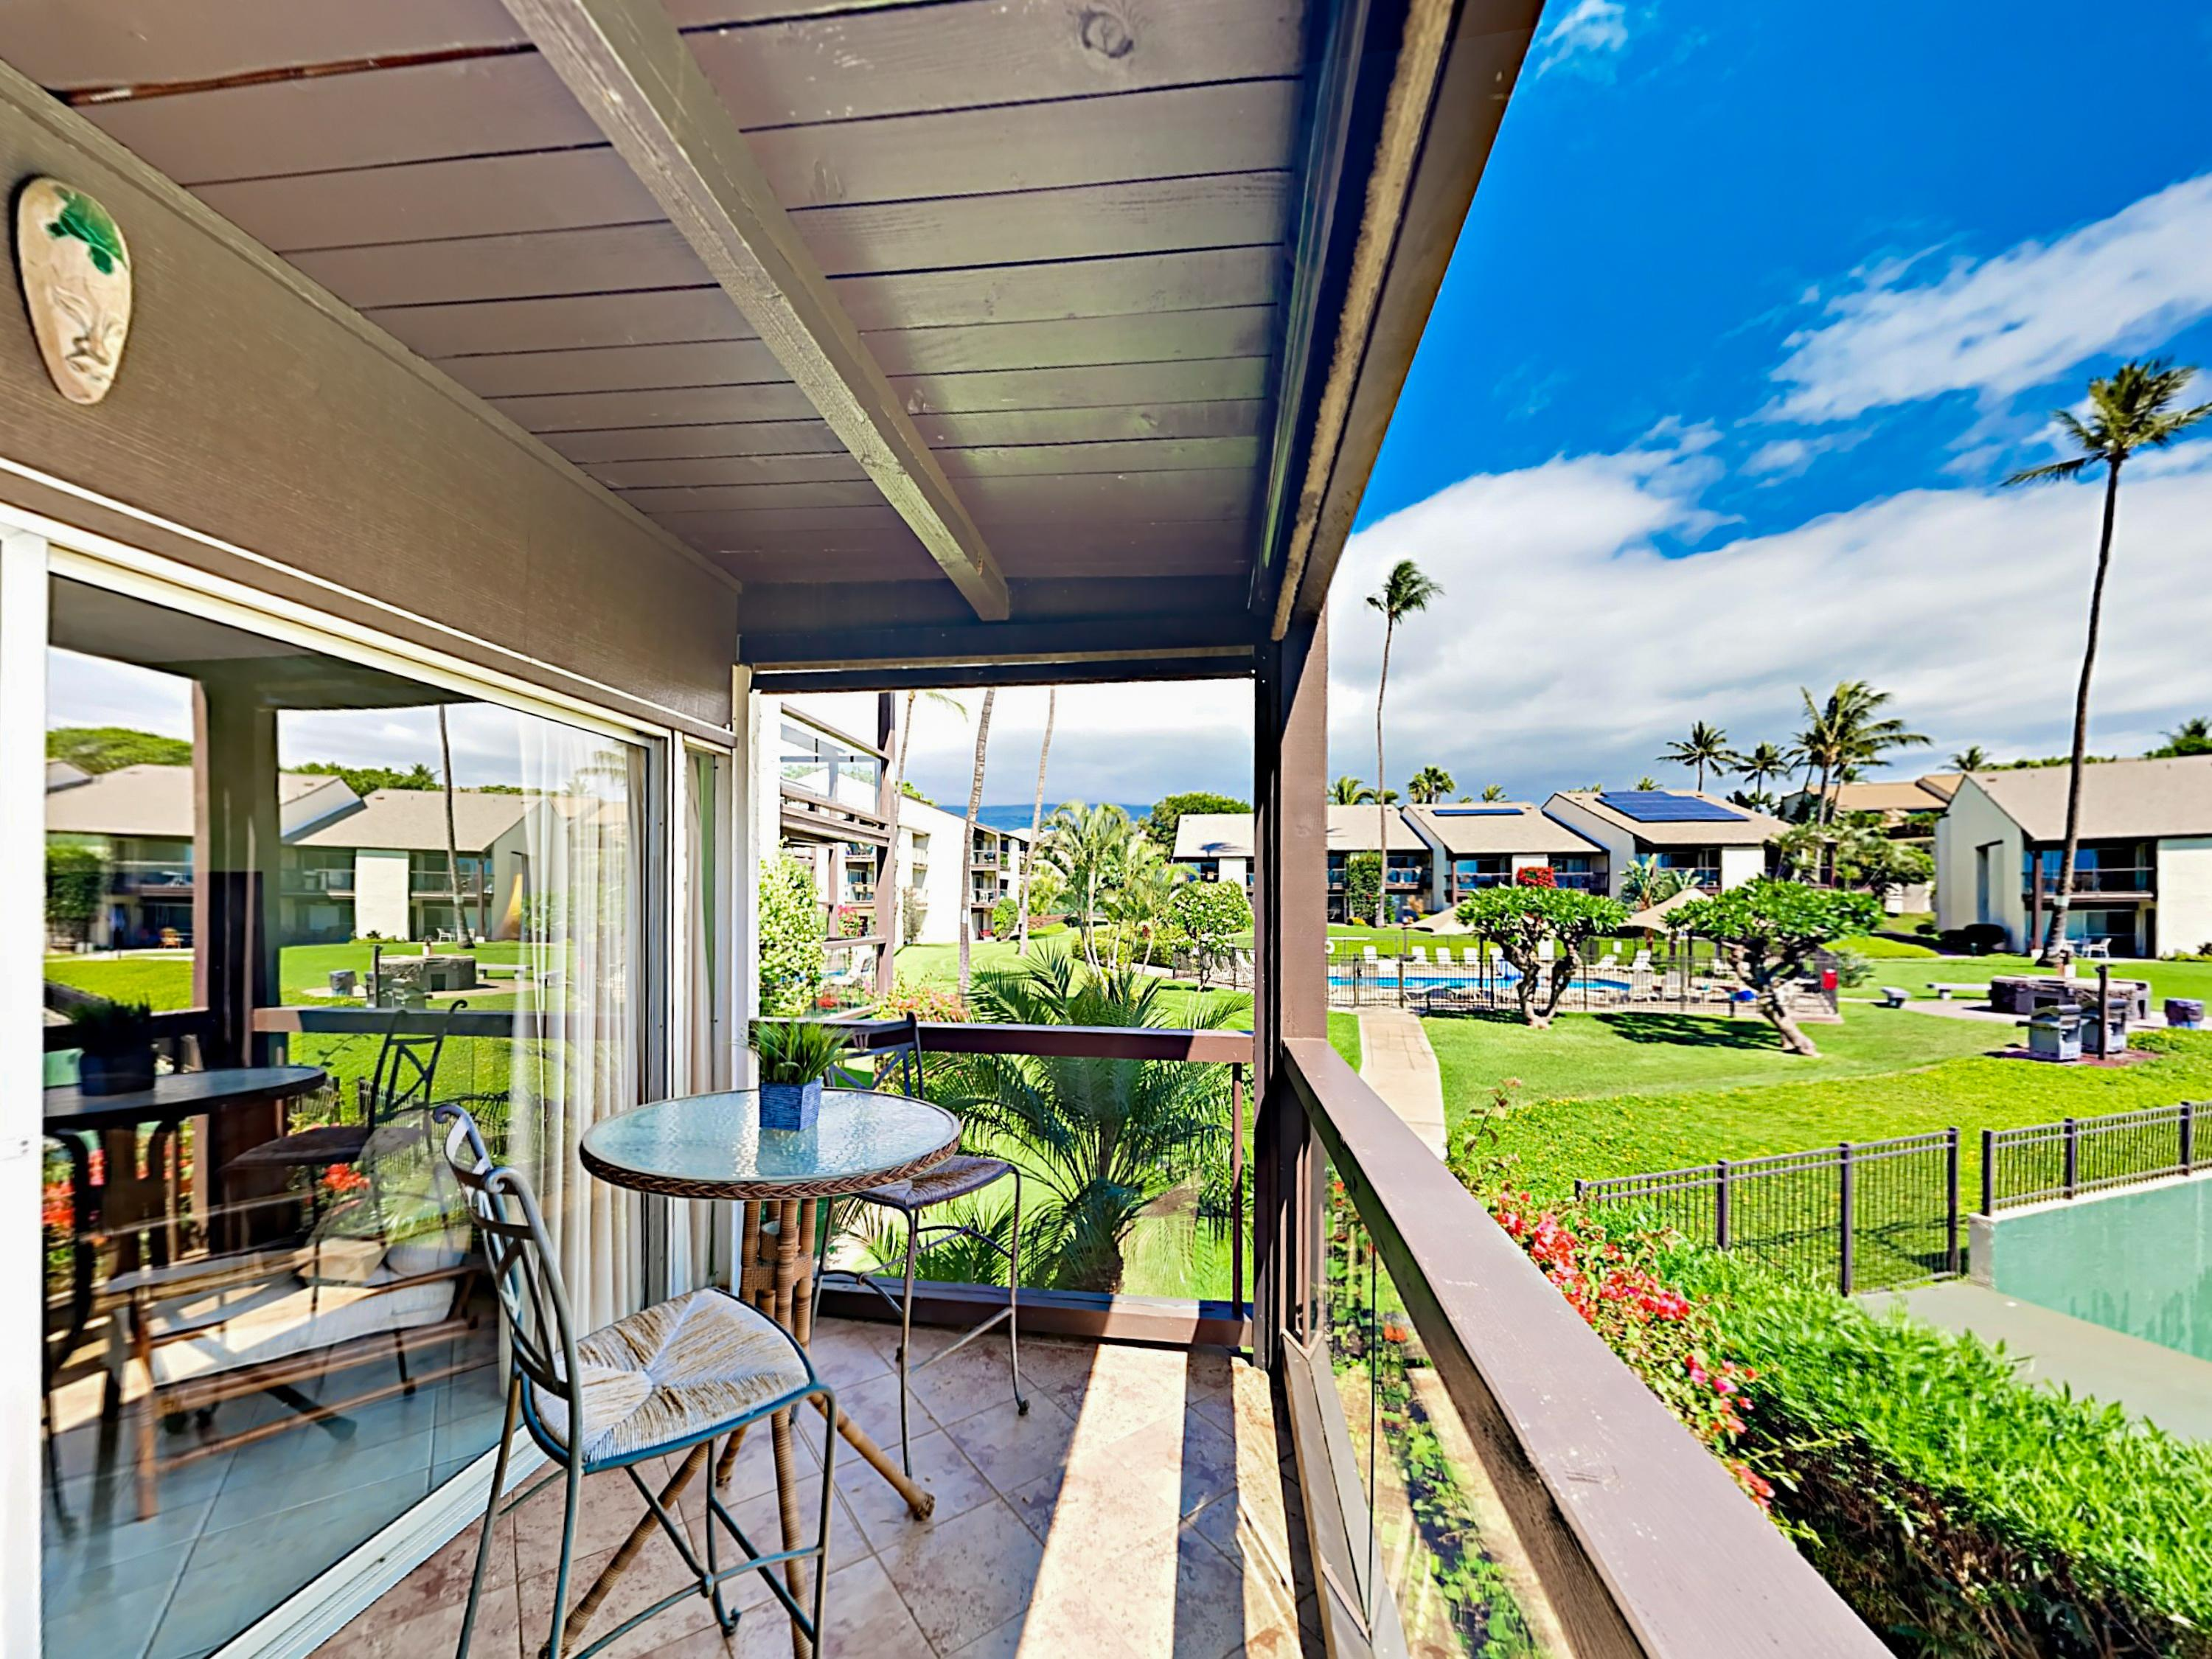 Welcome to Kihei! Overlooking the tennis courts, the covered balcony offers a great spot to sip morning coffee.